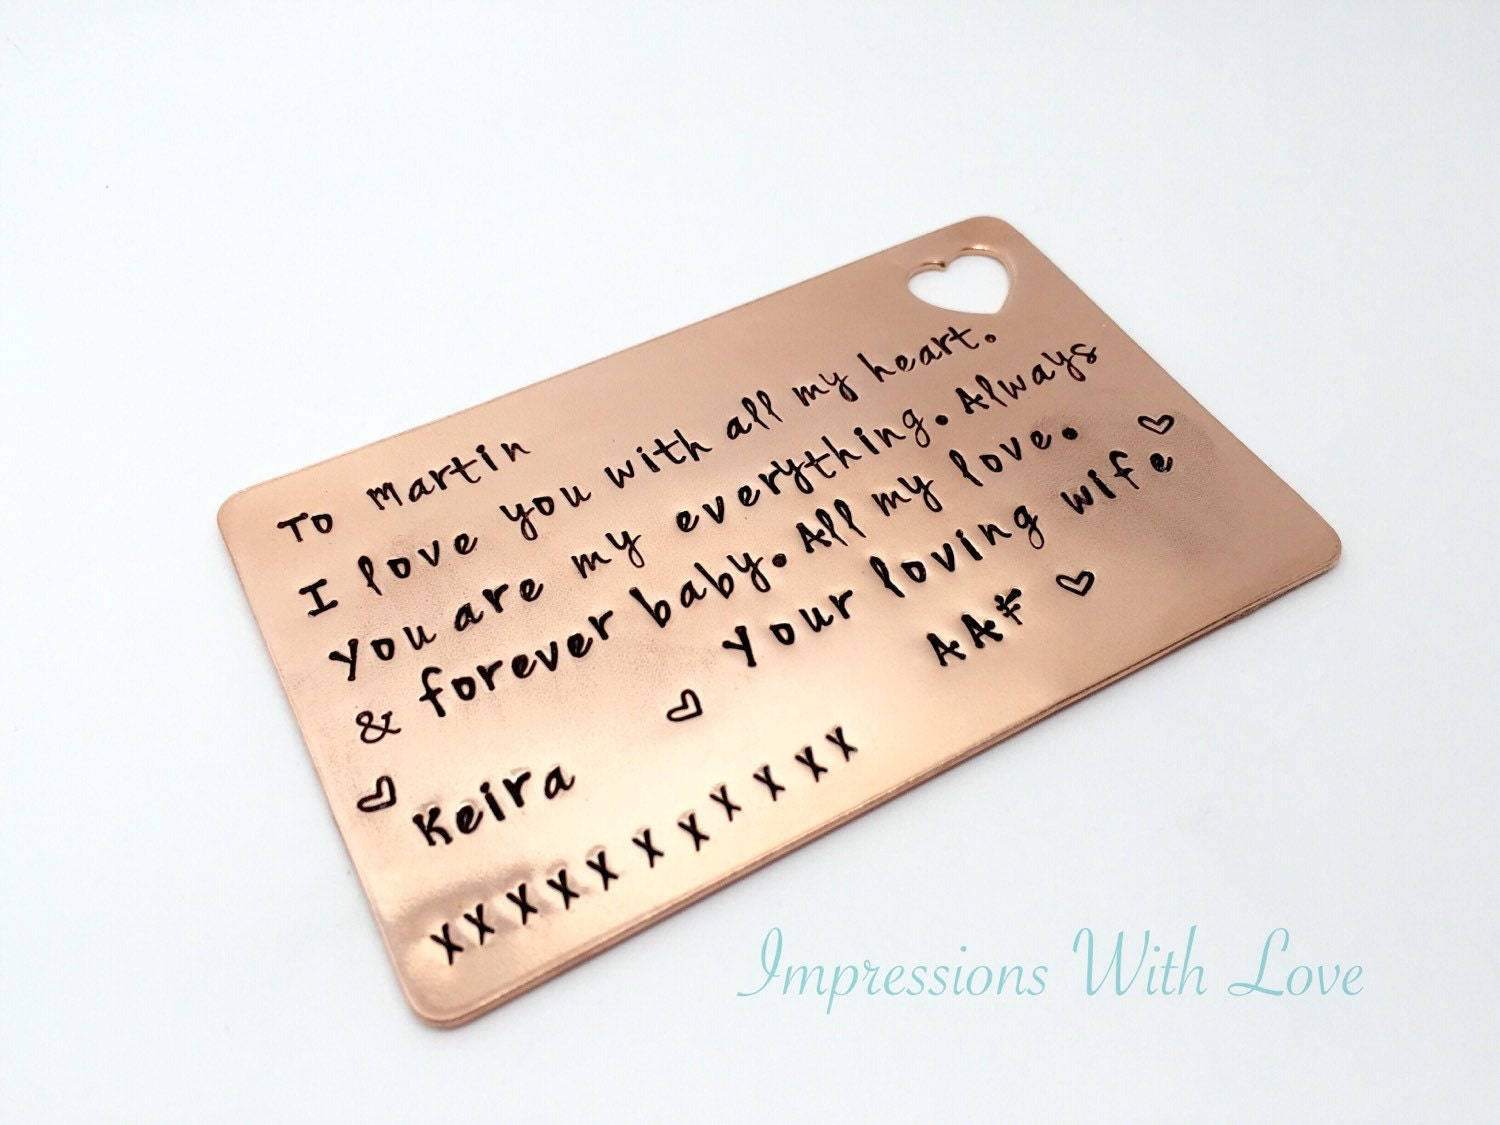 Gifts For 7th Wedding Anniversary: 7th Anniversary Gift Personalised Wallet Insert Card Hand